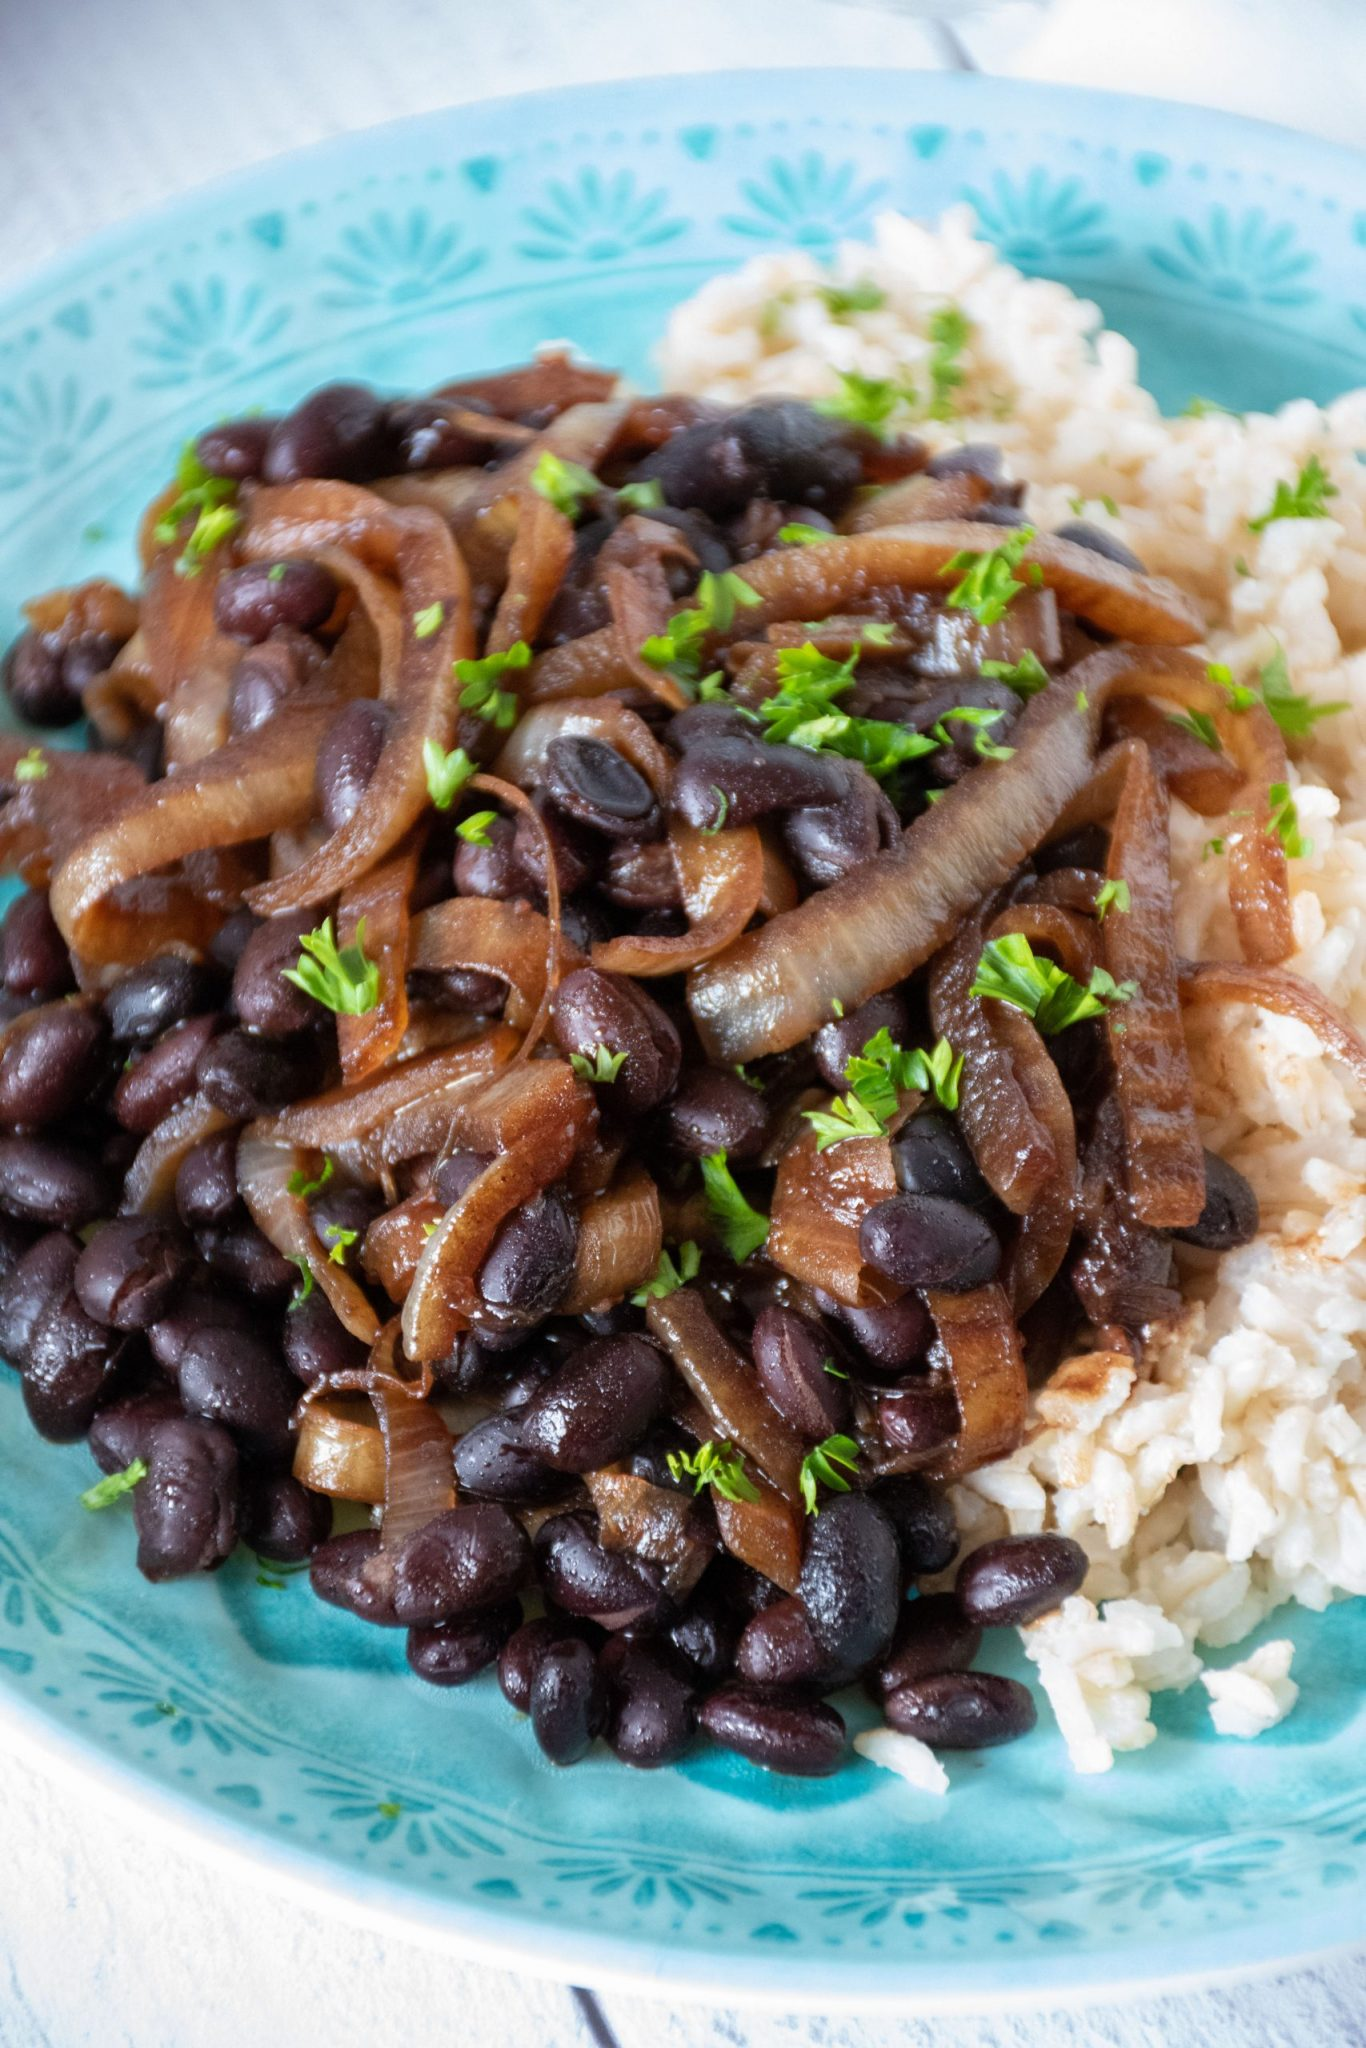 Balsamic glazed onions and black beans with rice on a blue plate, garnished with chopped parsley.